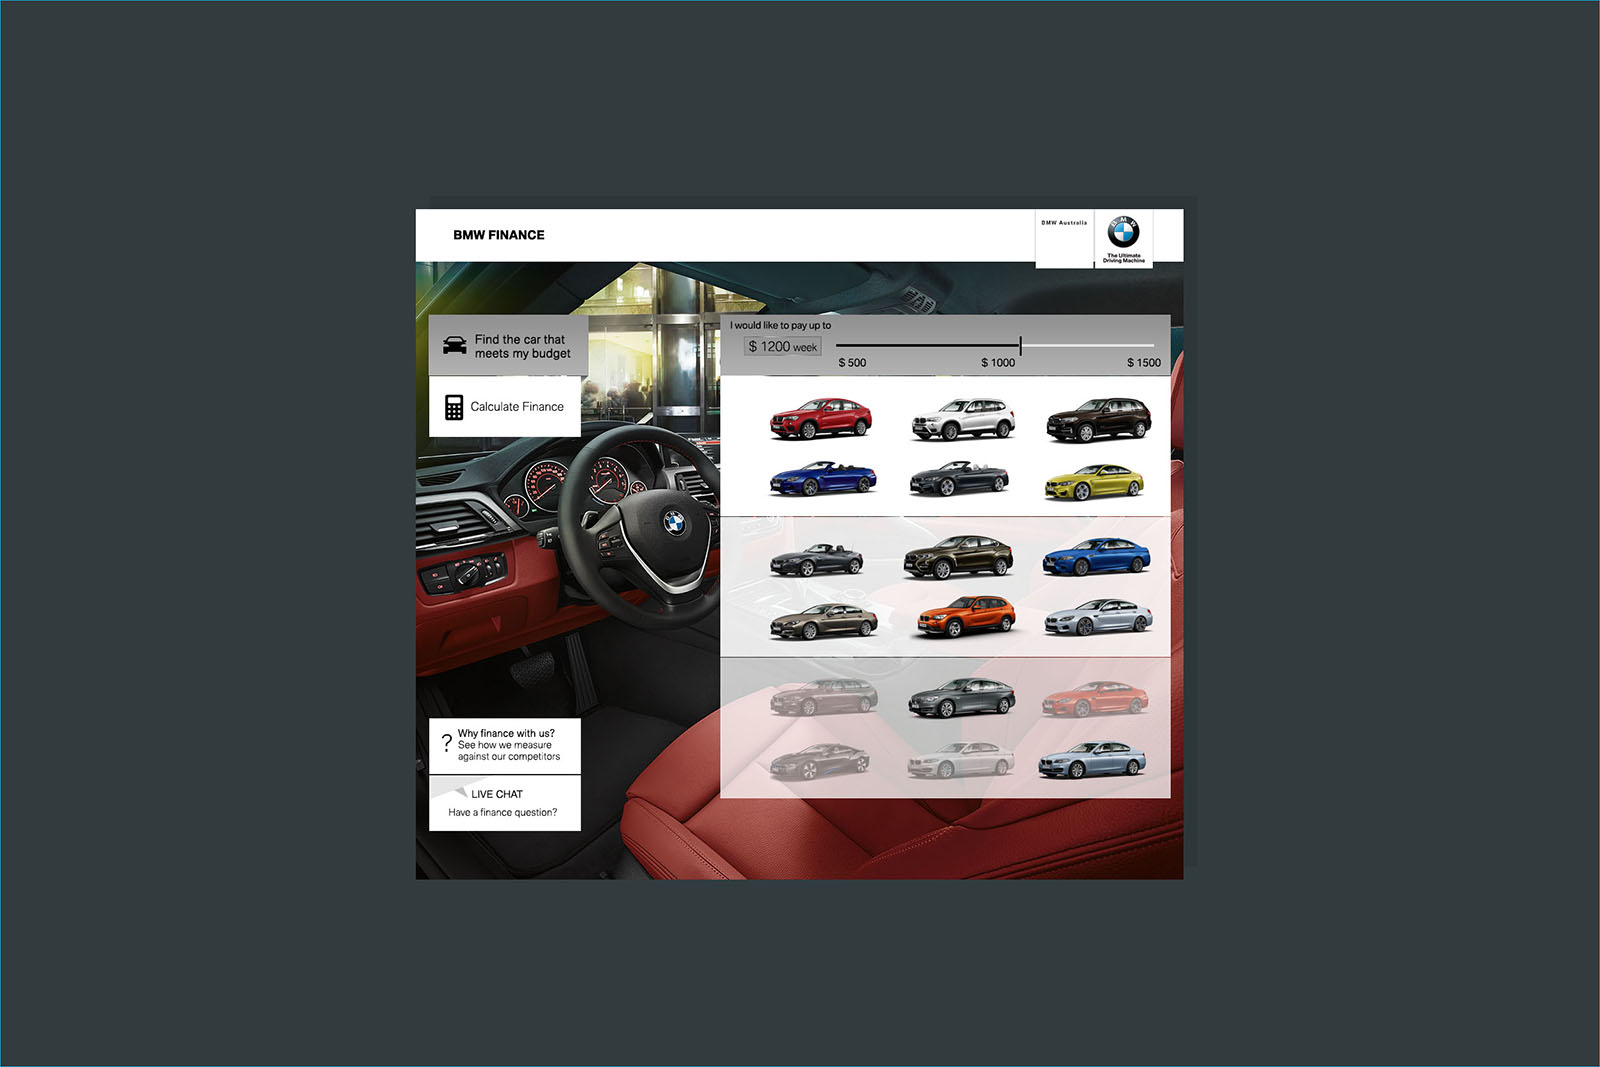 http://www.guernik.com/wp-content/uploads/2015/04/Creative_director_website_sydney__0006_BMW_1-copy.jpg